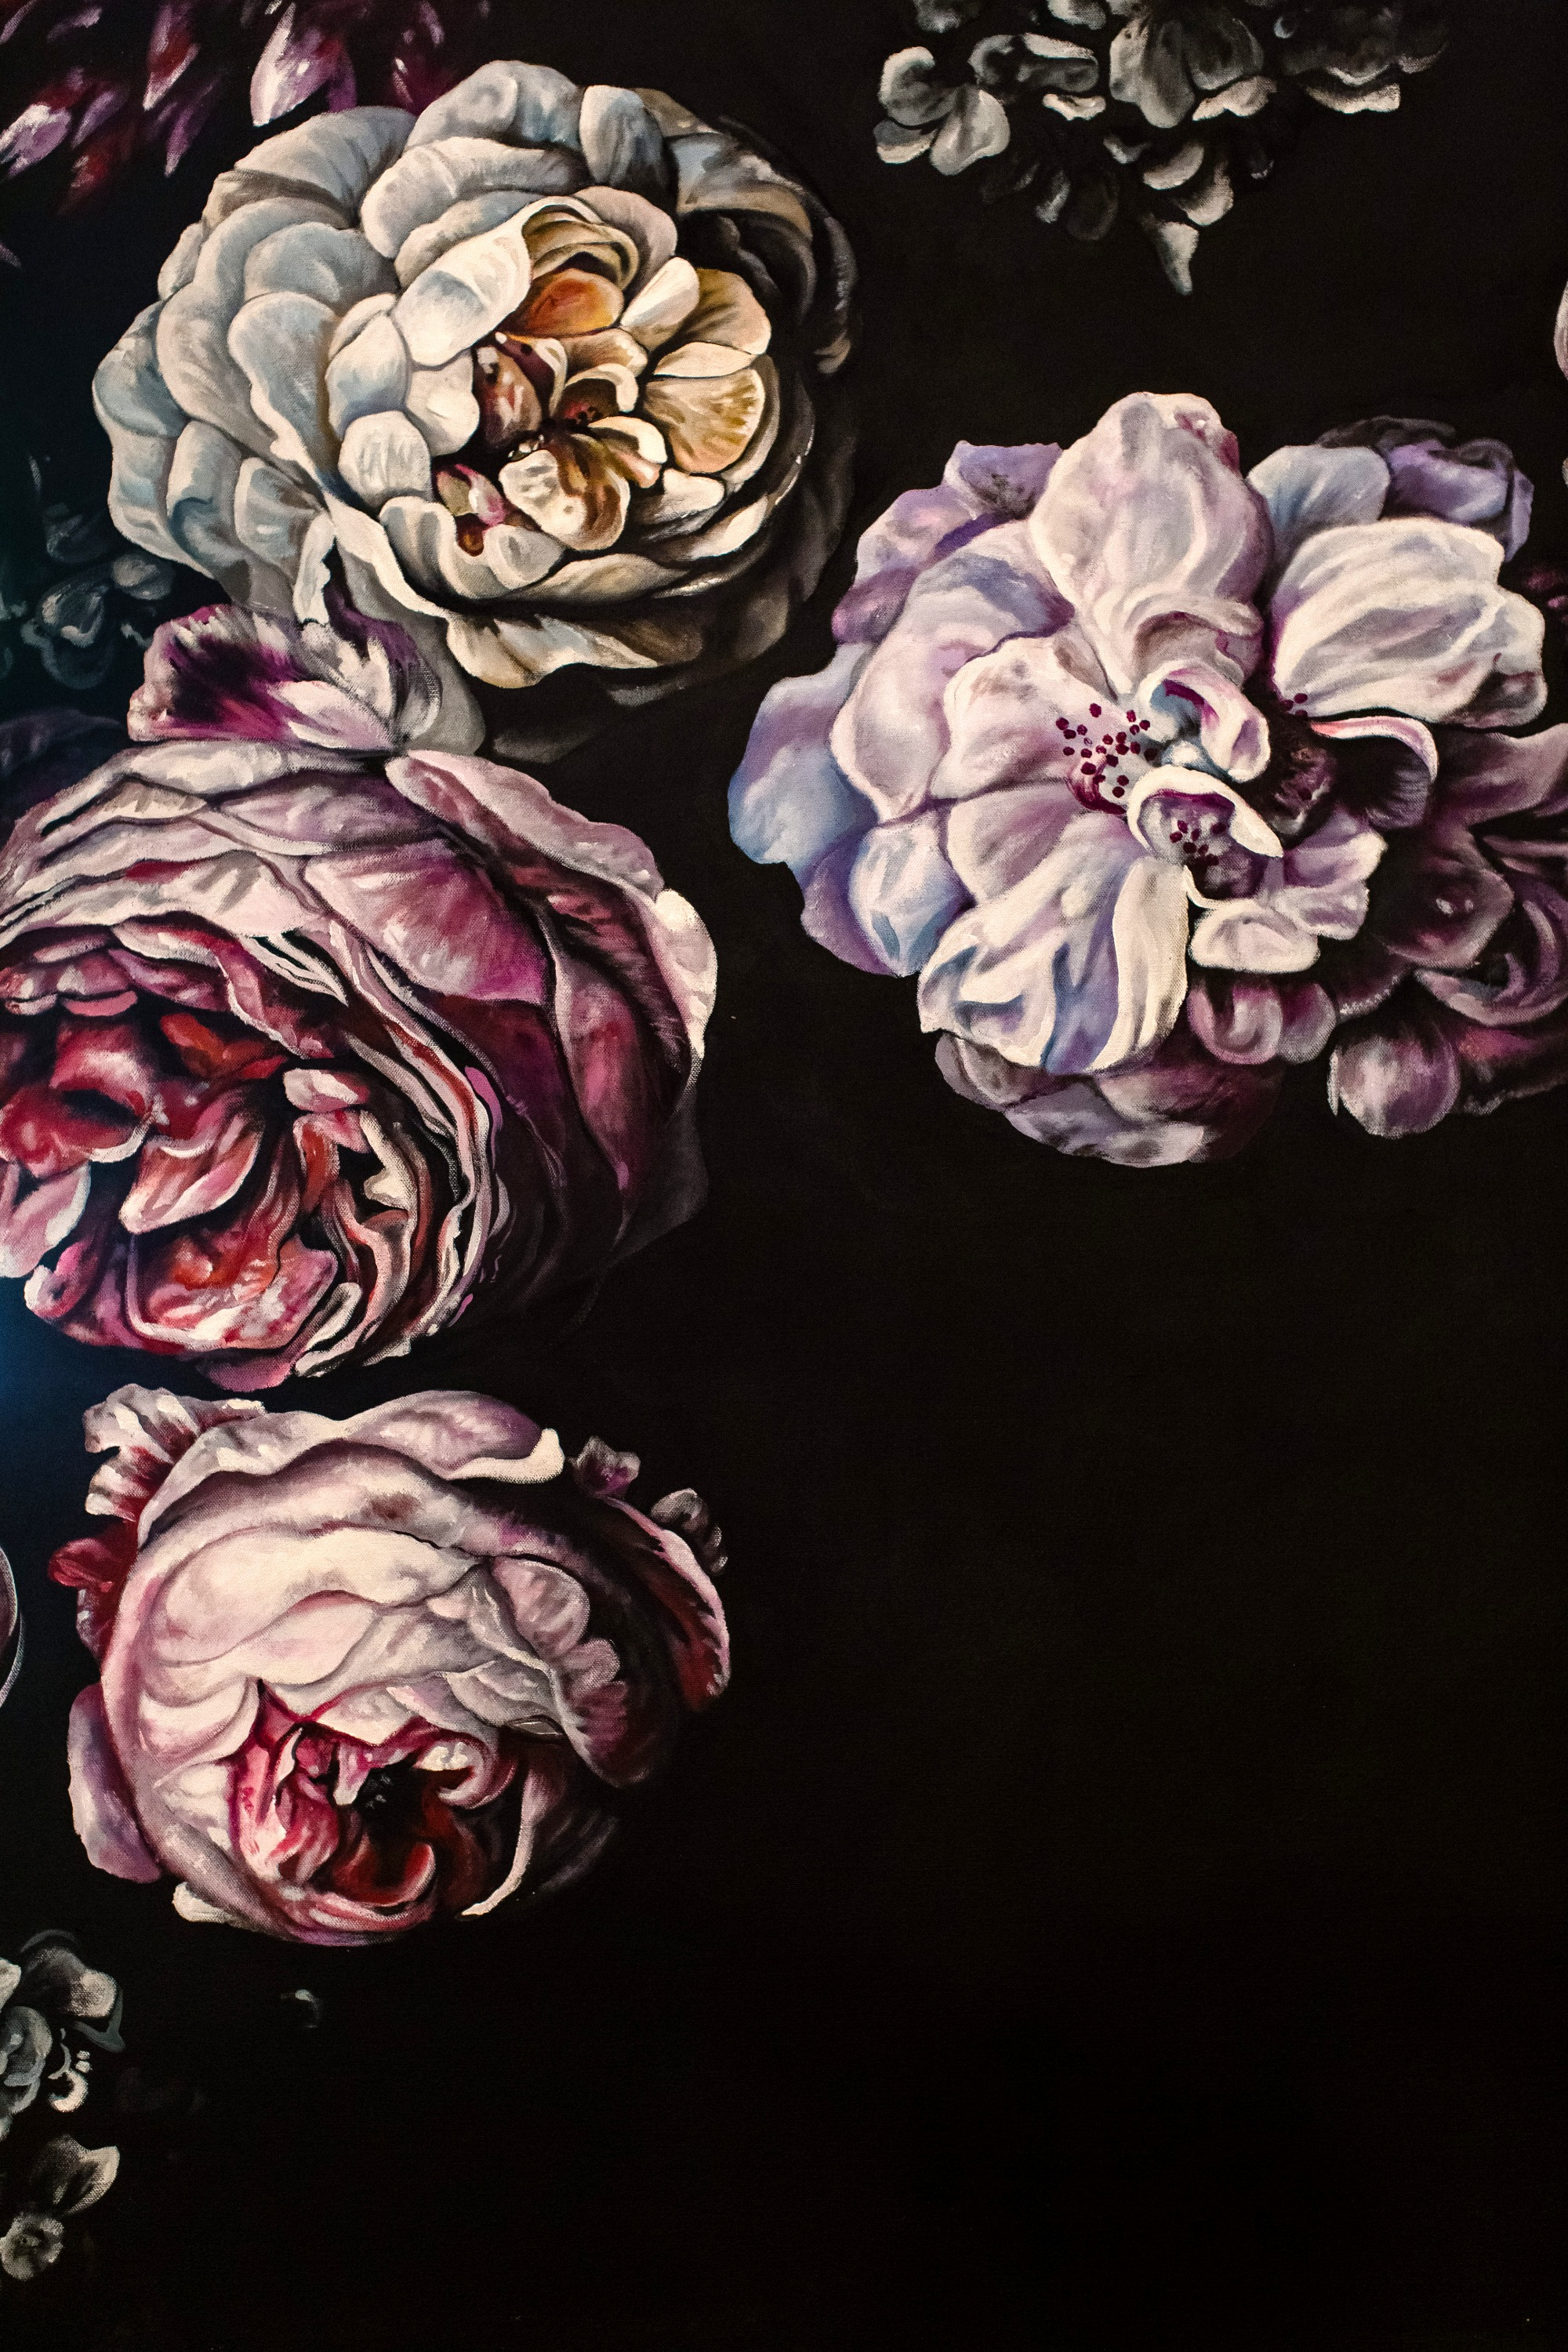 Dramatic, Moody, Sexy Floral Painting of Roses & Hydrangeas